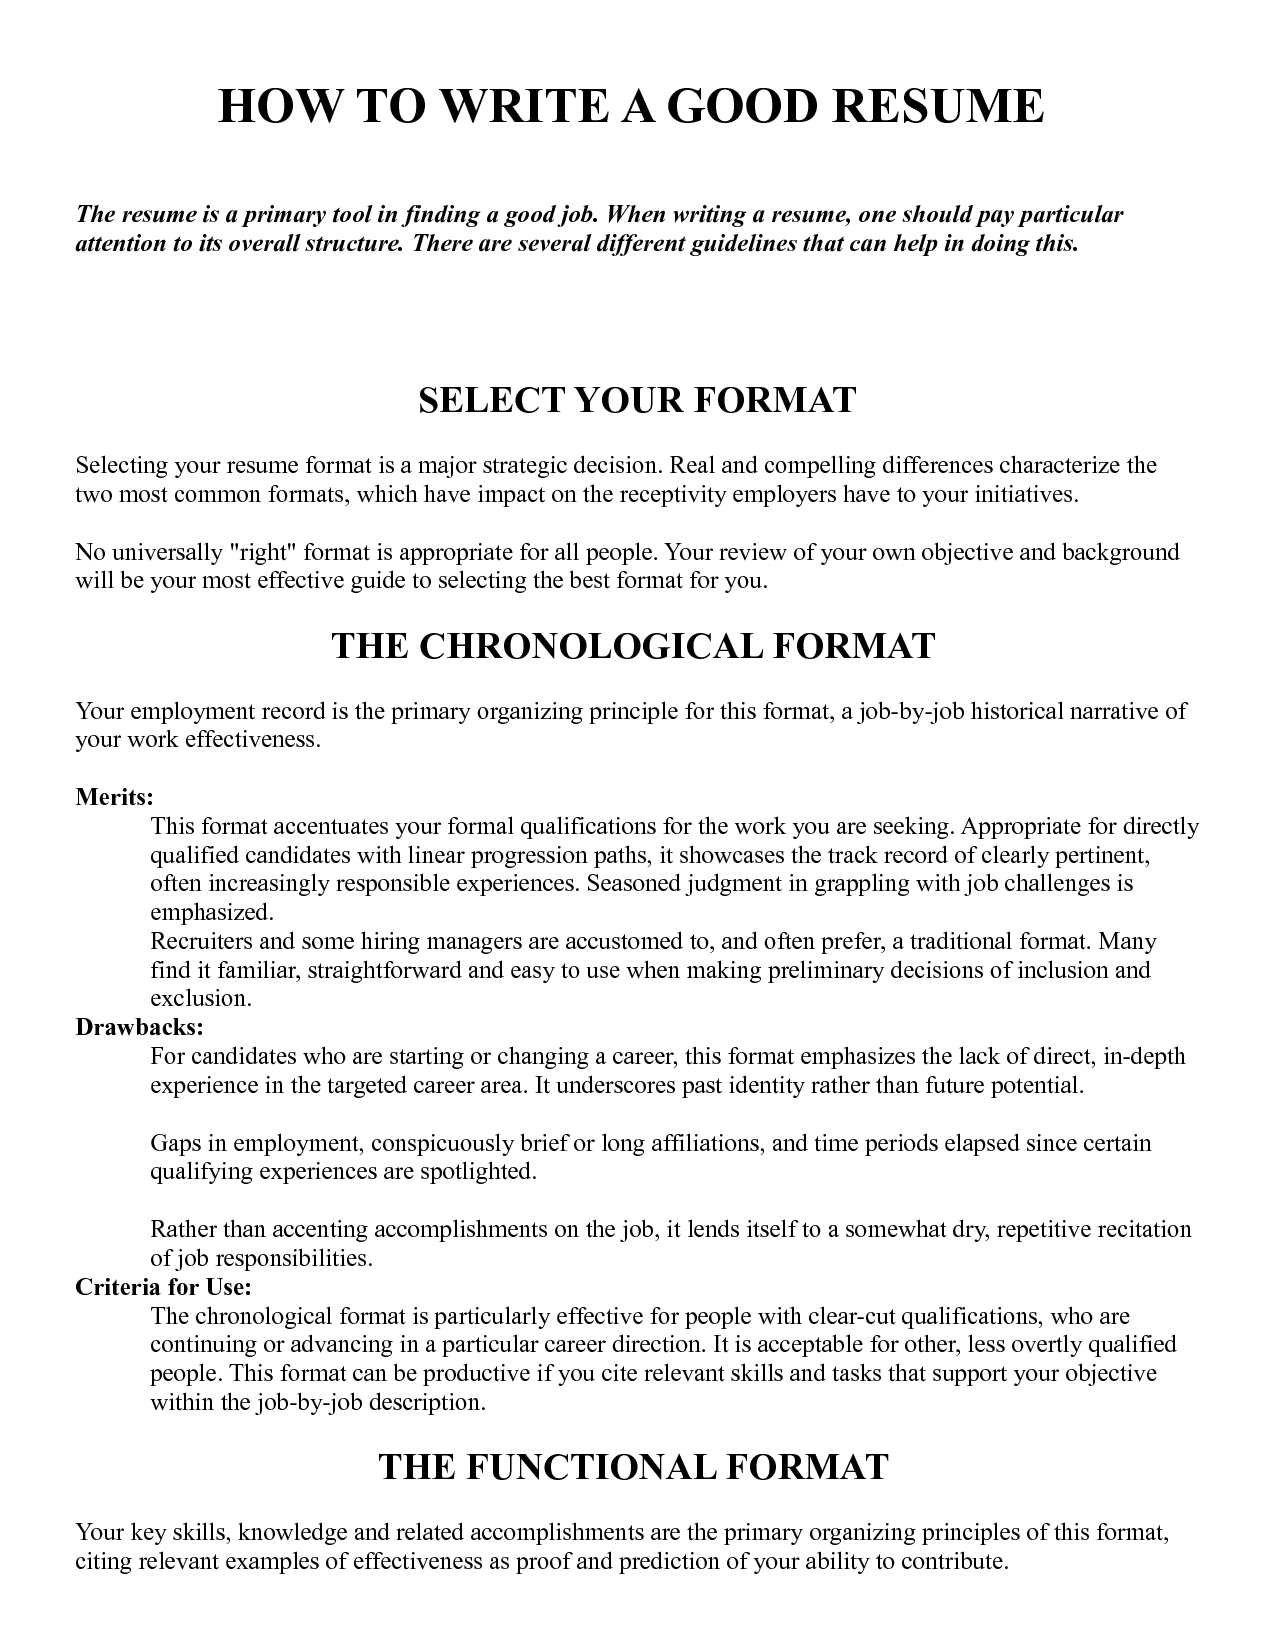 how to write first resume how write a good resume impressive cvs - How To Write A First Resume